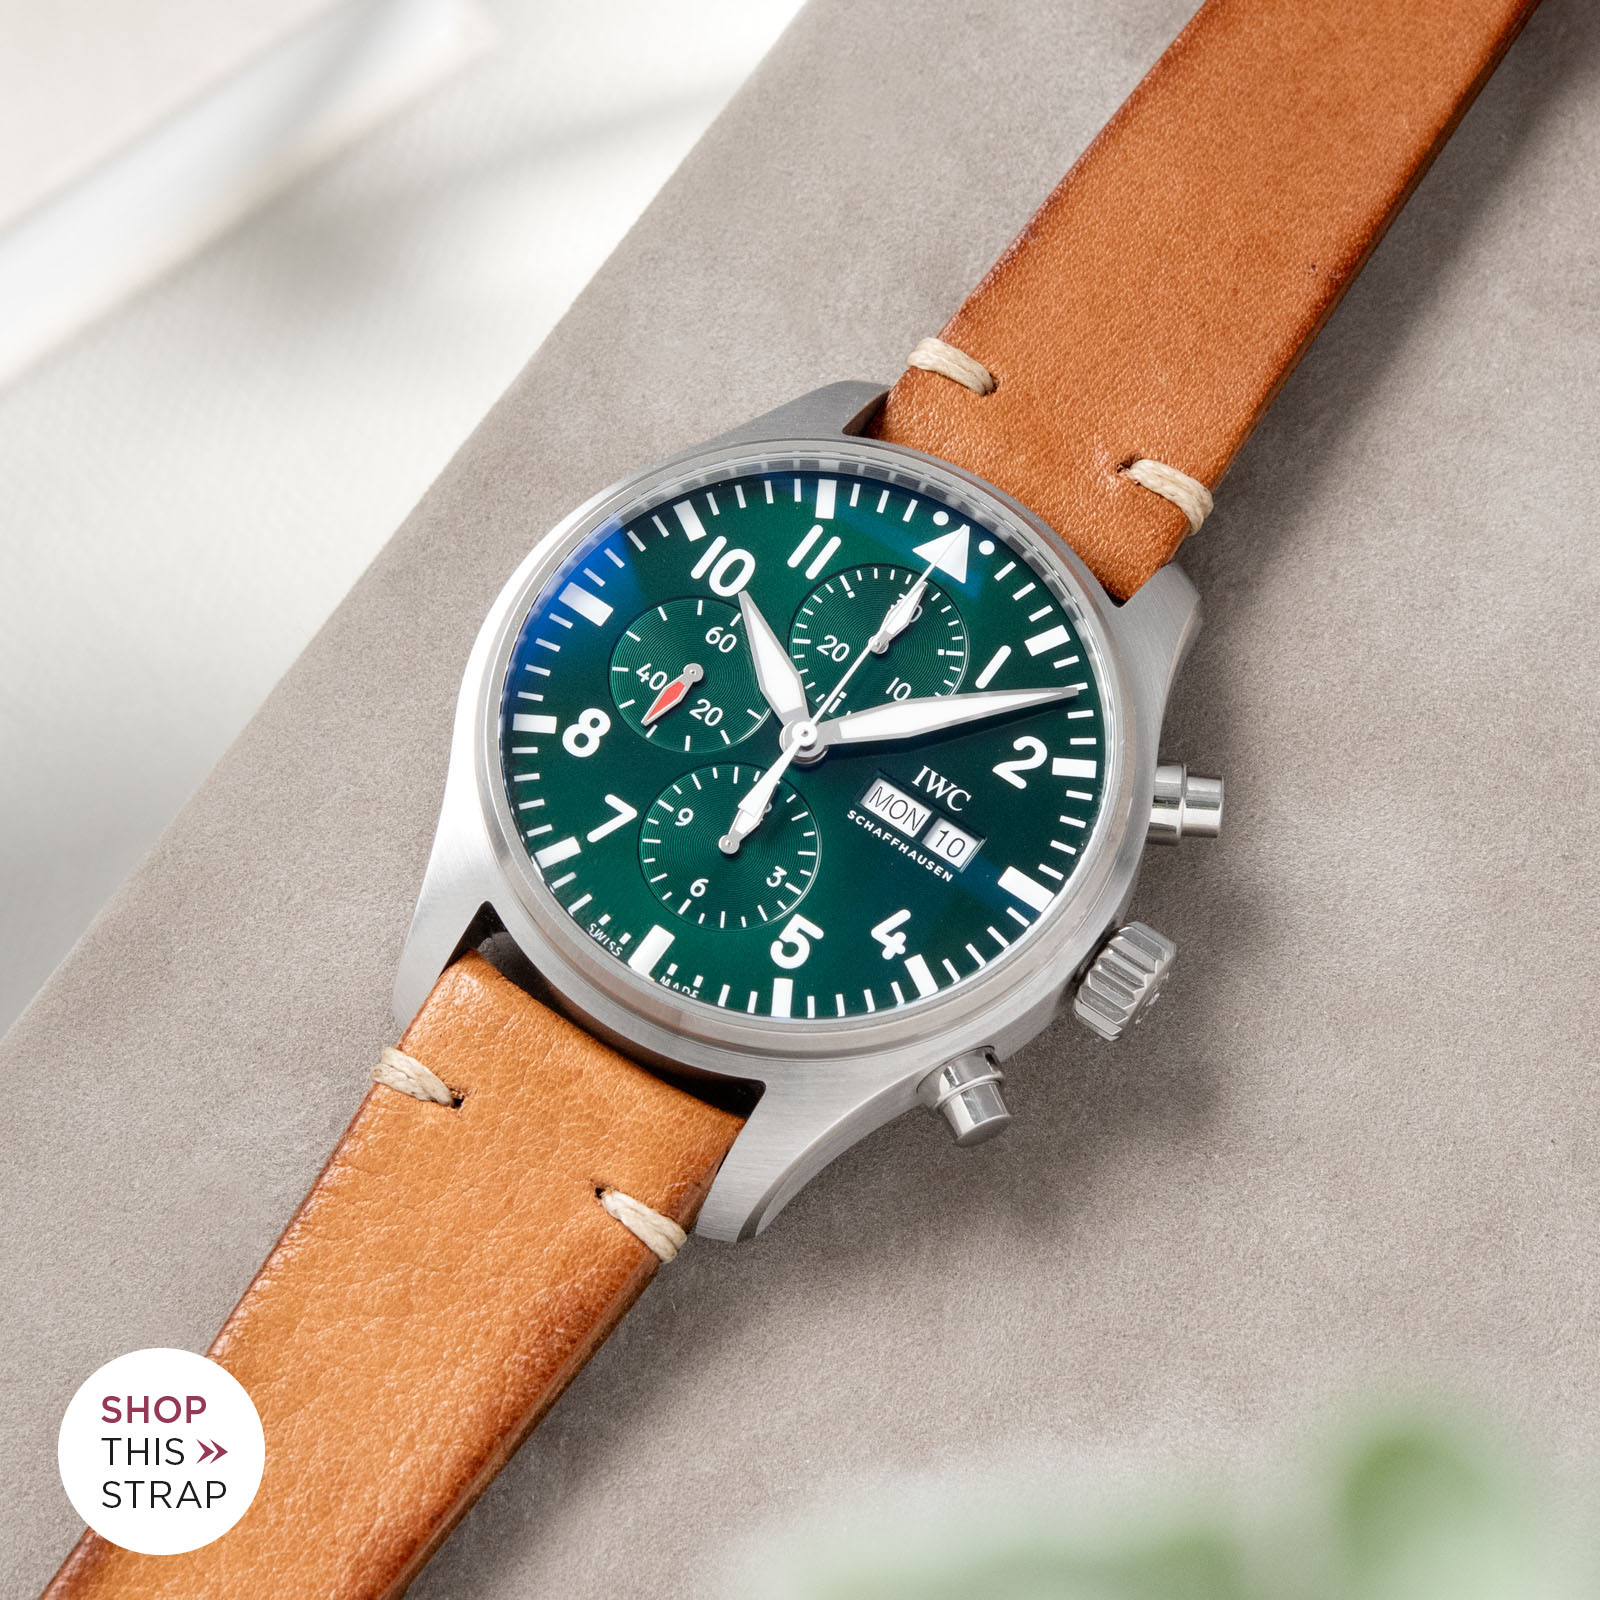 Bulang and Sons_Strapguide_IWC Pilots Watch Chronograph Spitfire_Caramel Brown Leather Watch Strap